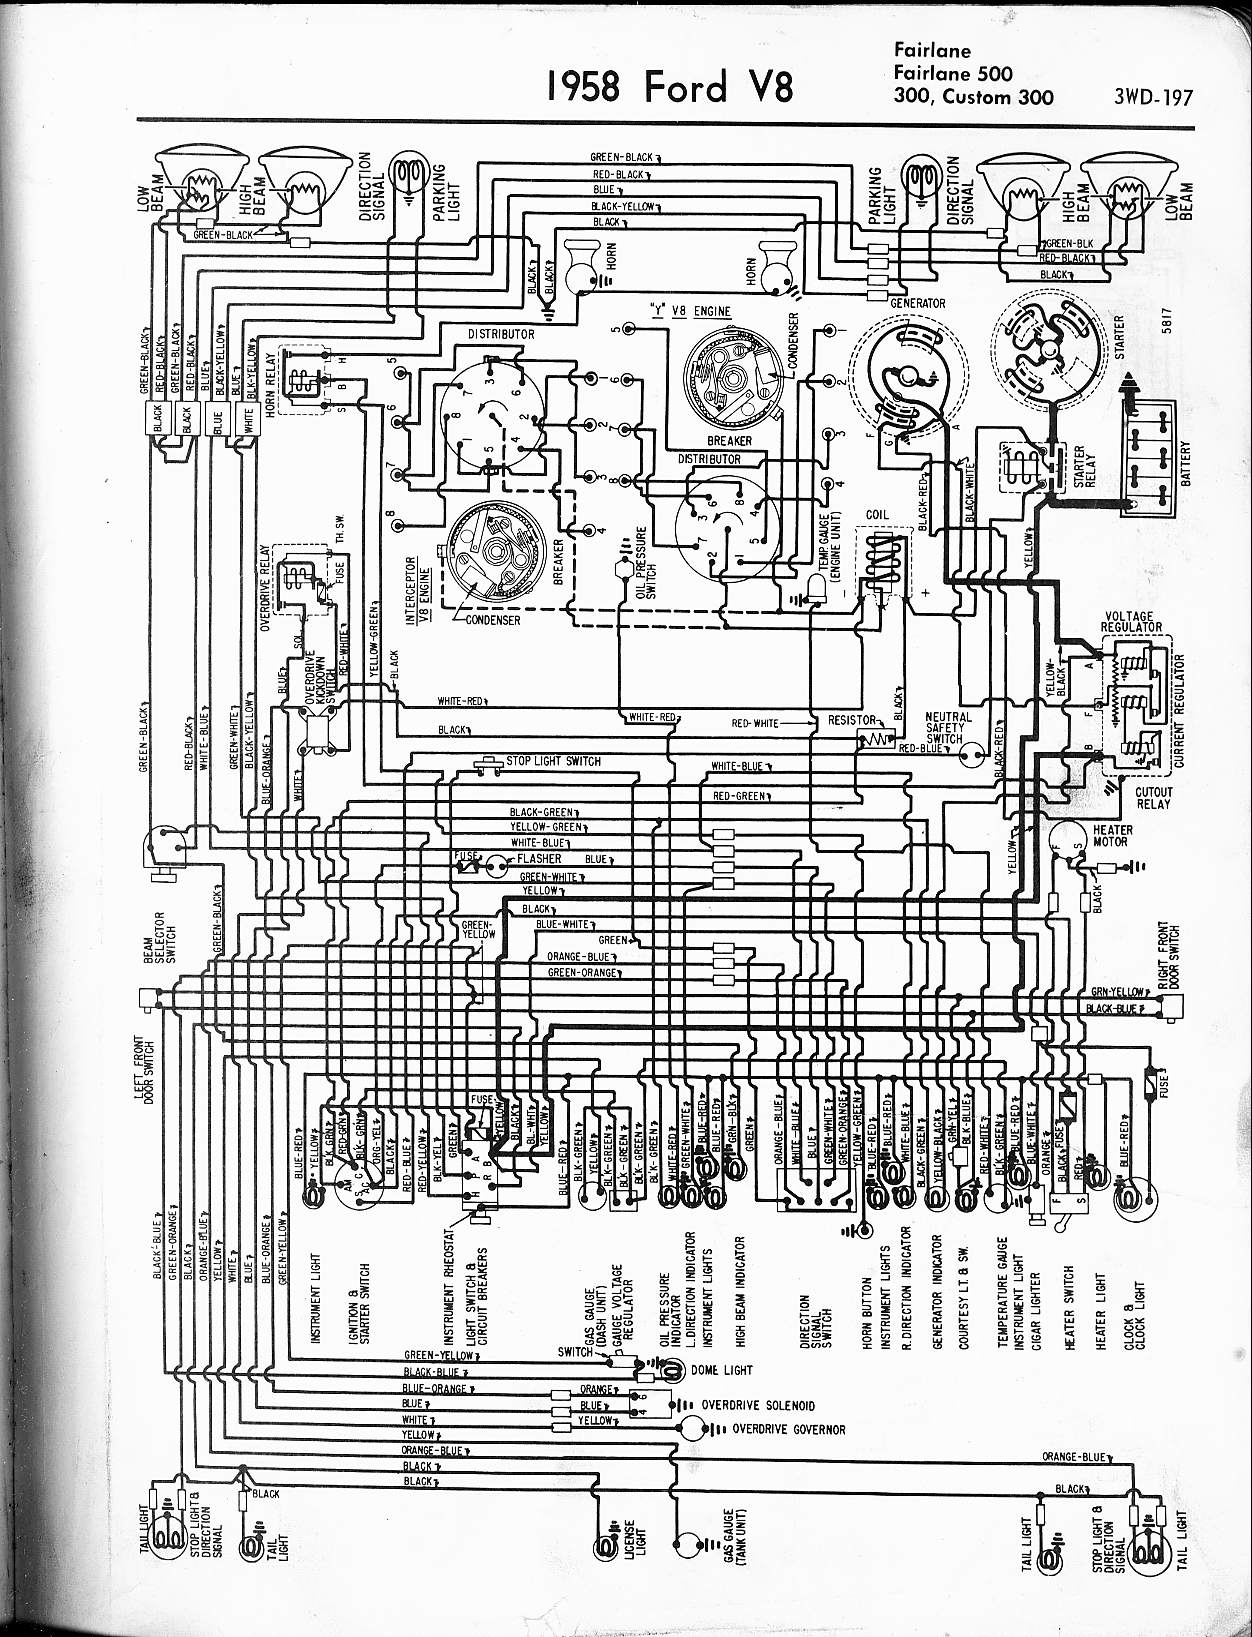 hight resolution of 57 65 ford wiring diagrams 1965 corvette wiring schematic 1958 v8 fairlane 500 300